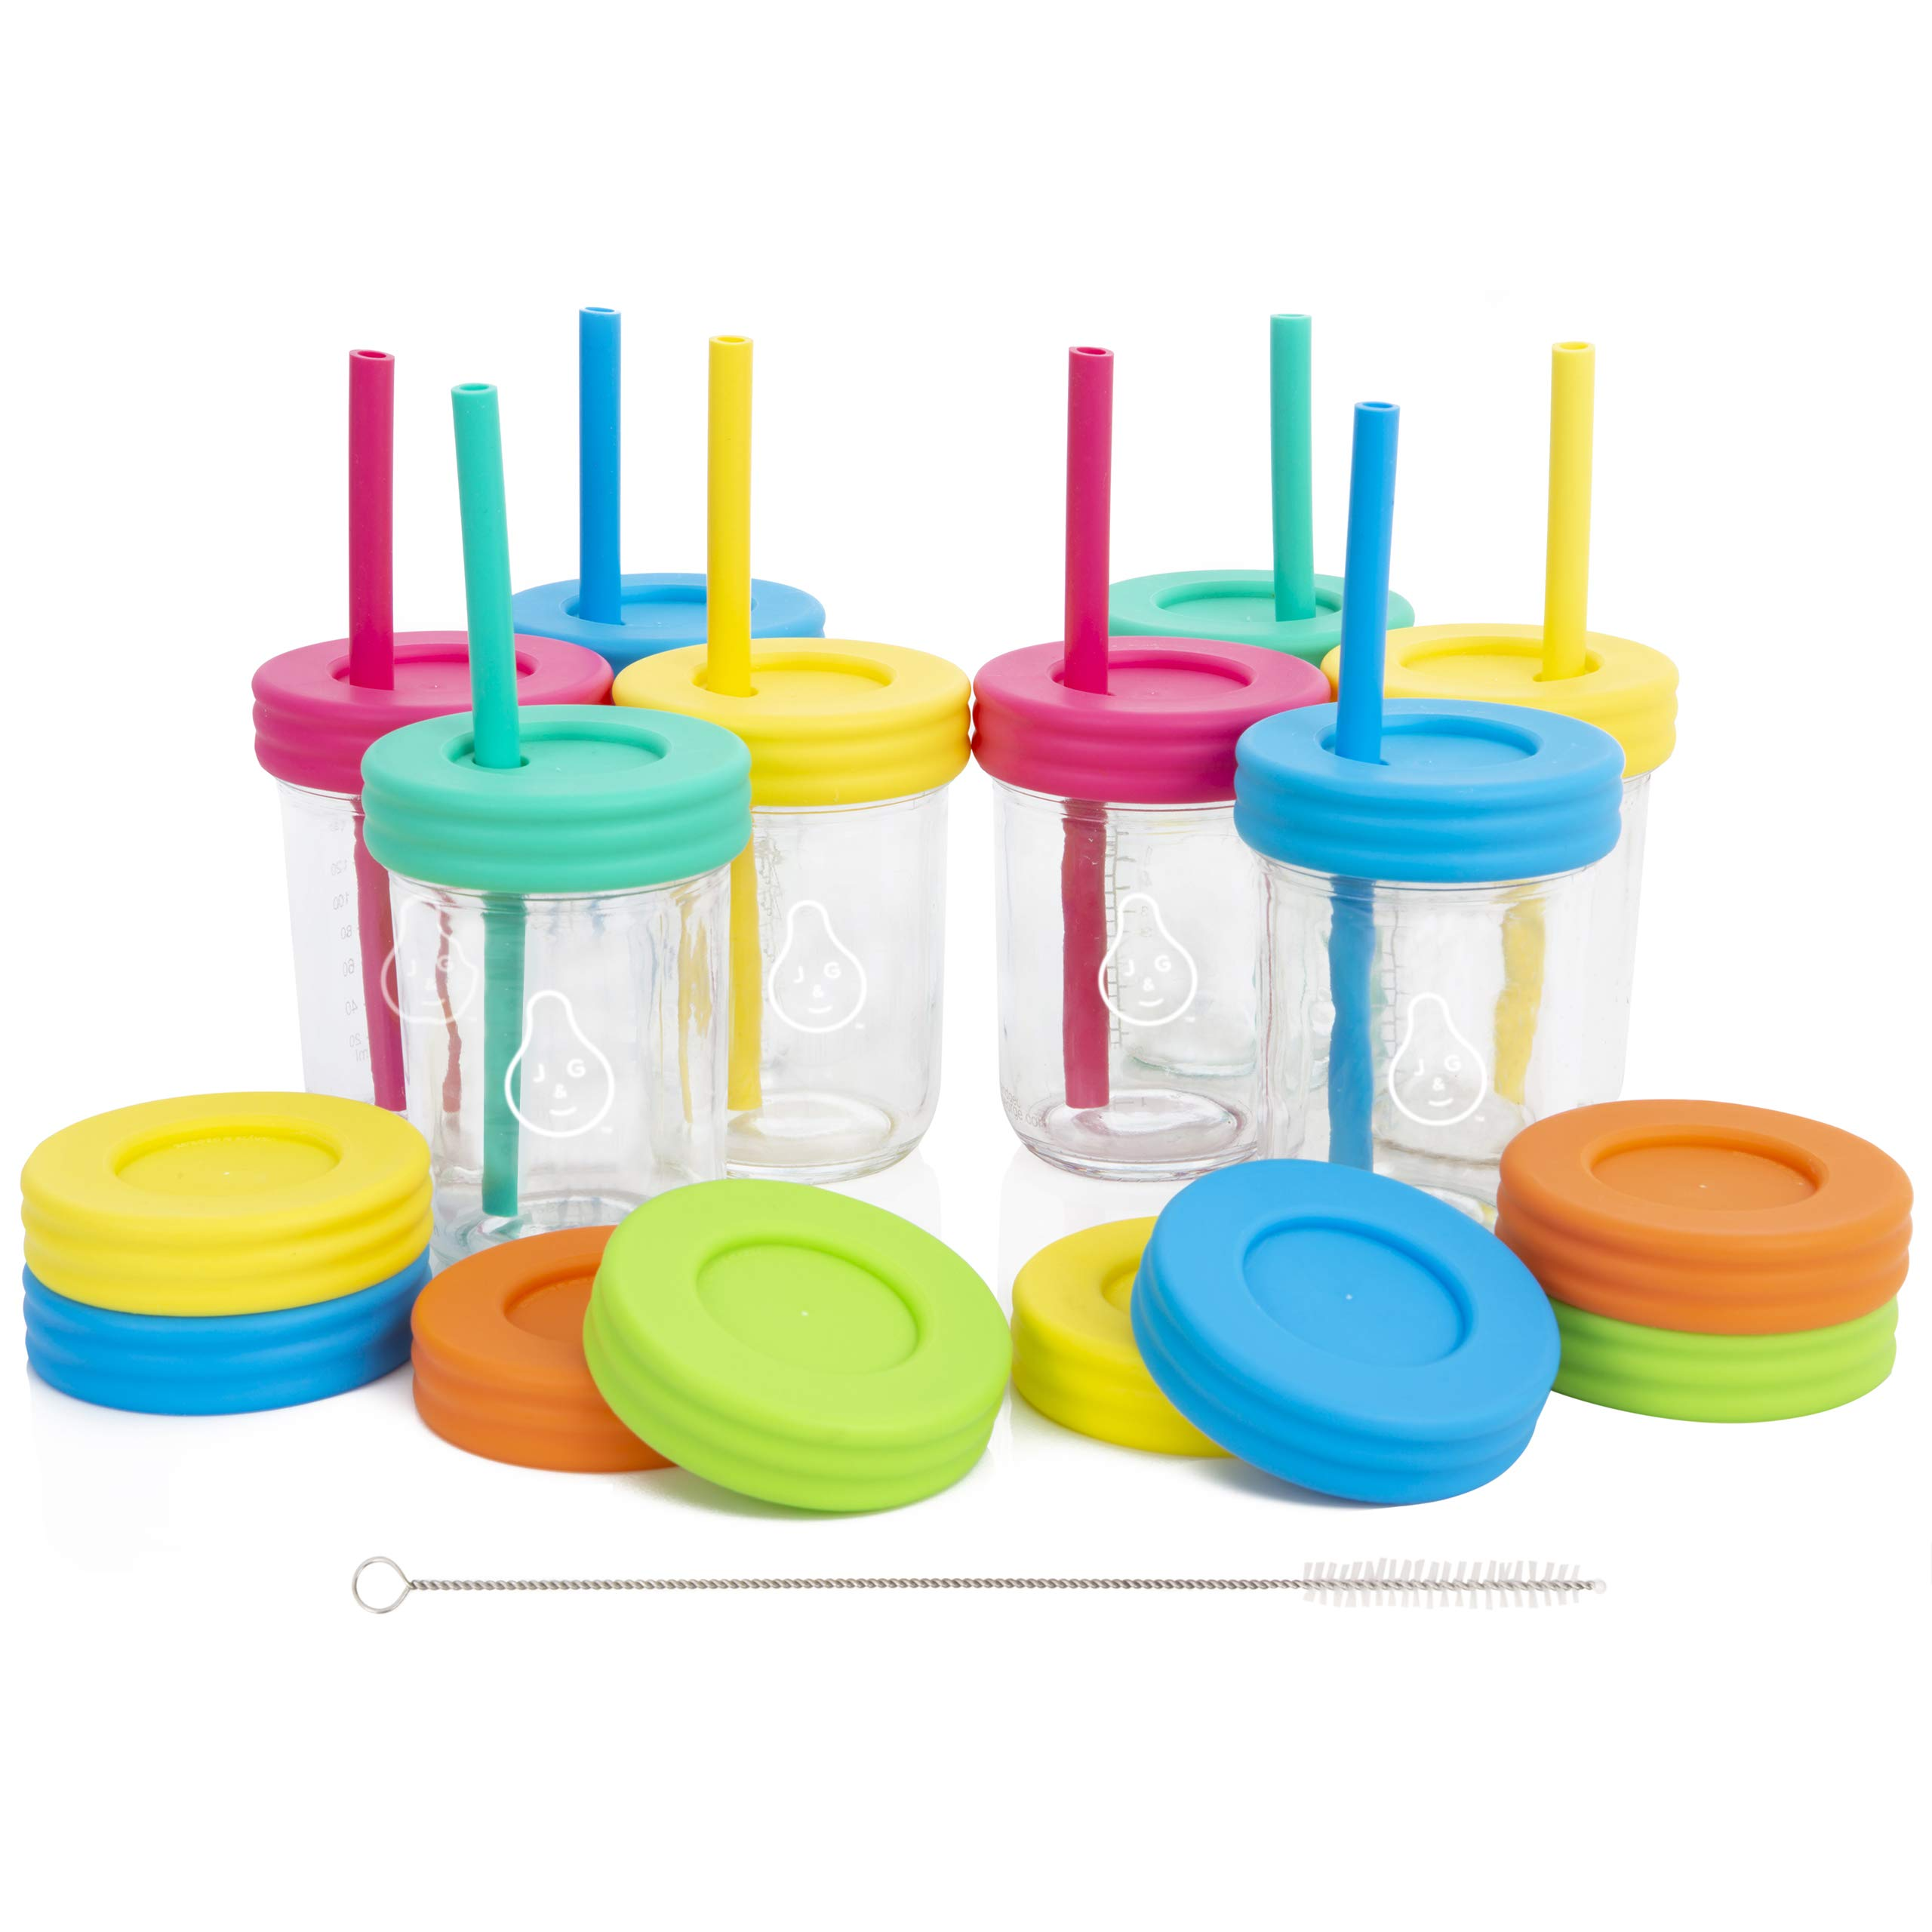 Kids 8oz Glass Mason Jar Drinking Cups with Straw Lids + Leak Proof Regular Lids + Silicone Straws + Cleaning Brush - Spill Proof, Sippy Cups for Toddlers, Kids Drinking Glasses, Food Storage-8 Pack by Jervis & George